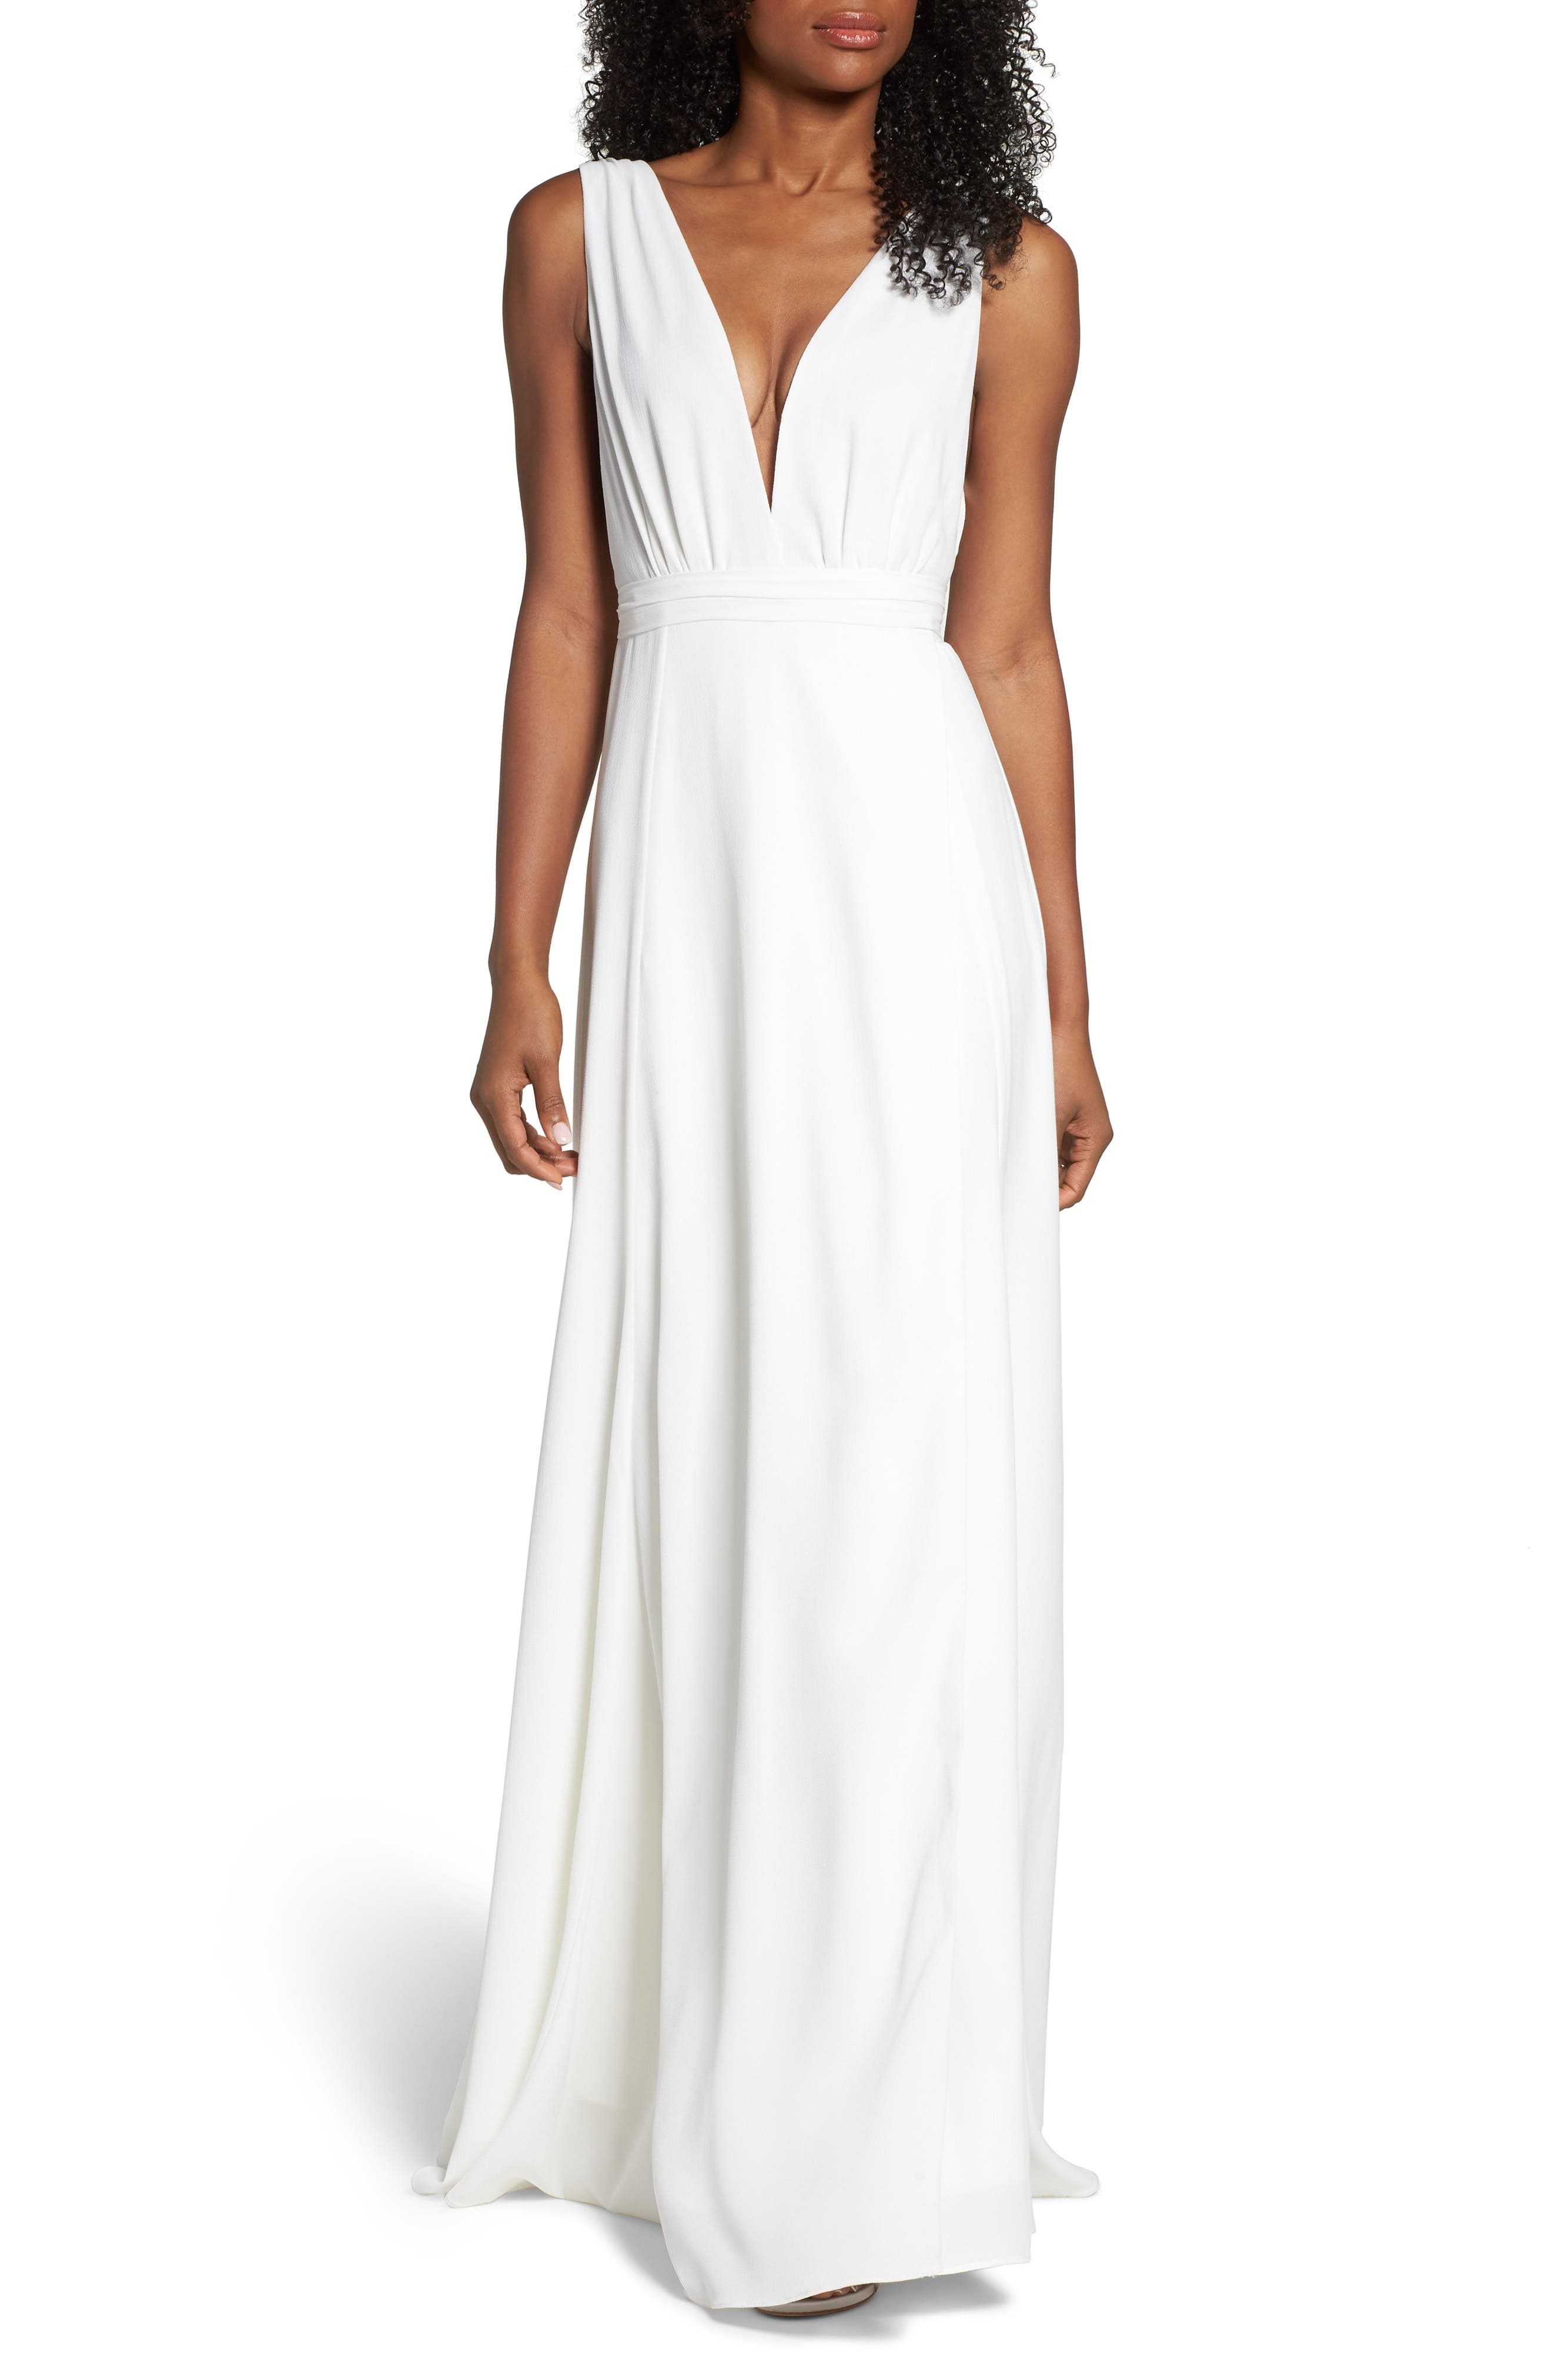 Joanna August Plunging Wrap Dress (Nordstrom Exclusive)